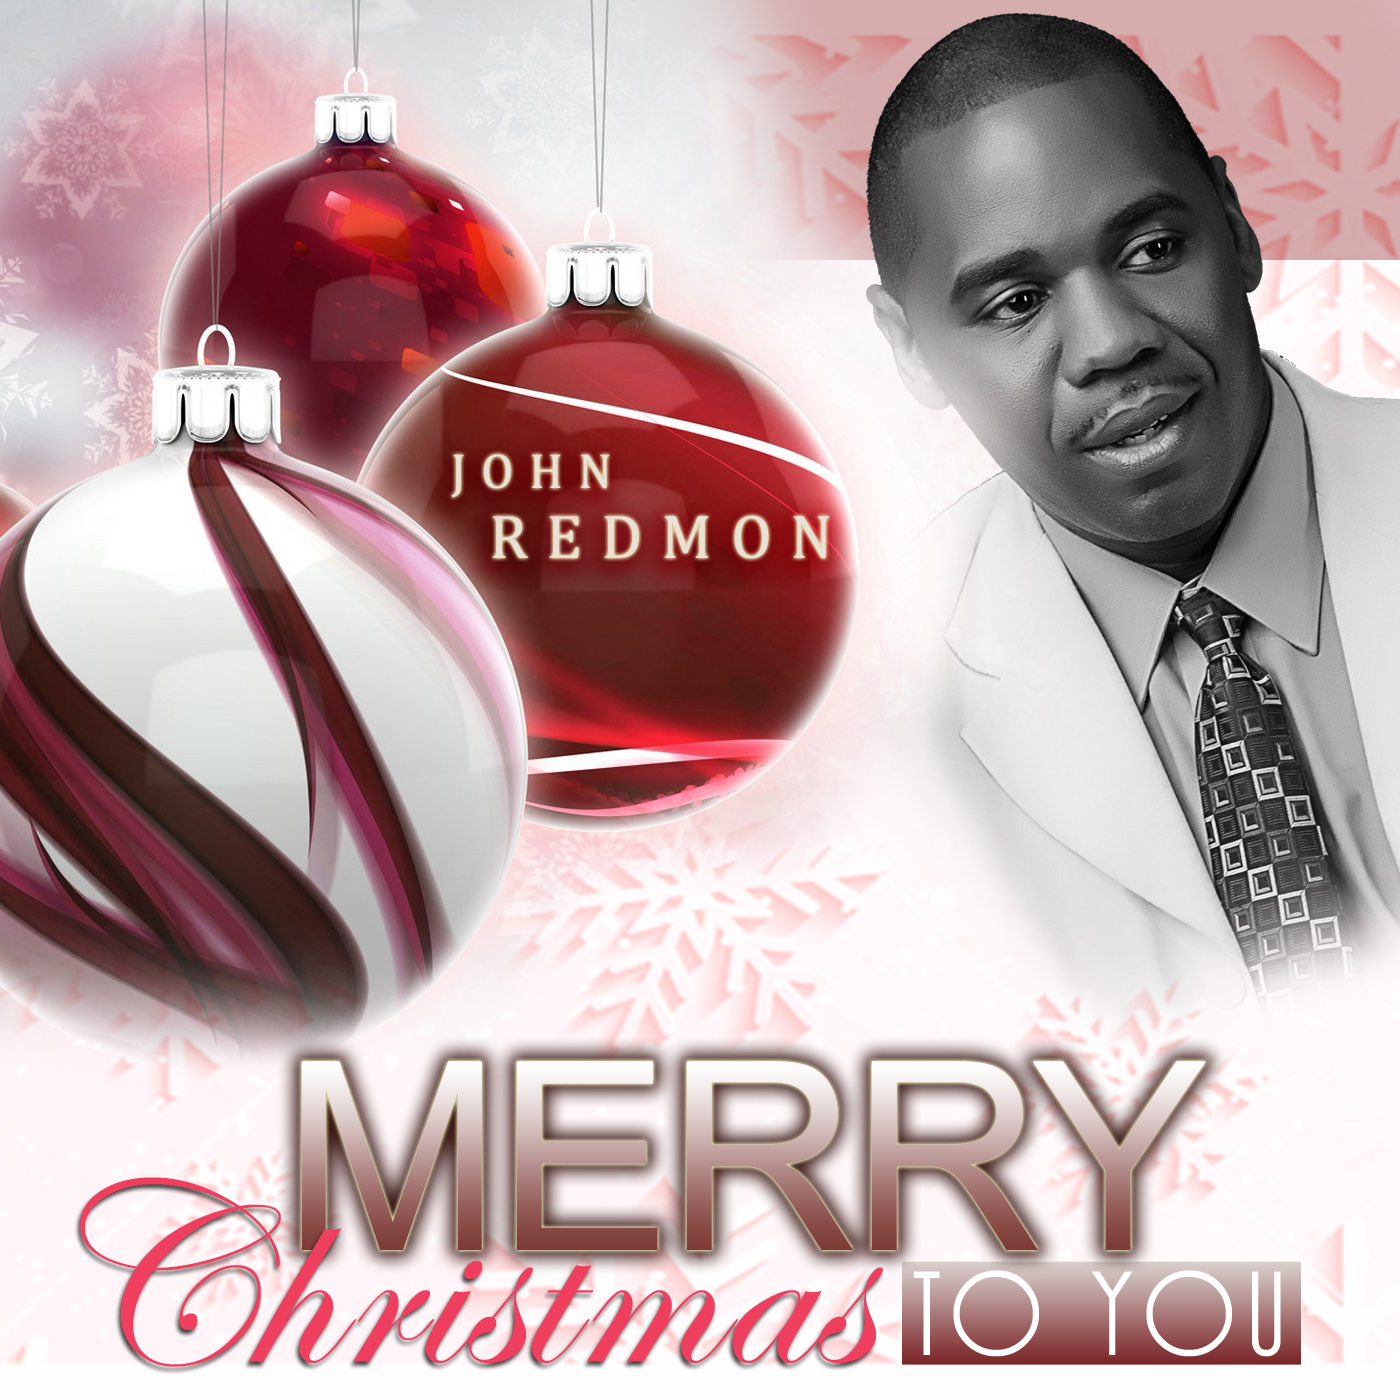 John Redmon [The Piano Series] : Merry Christmas To You (MP3)